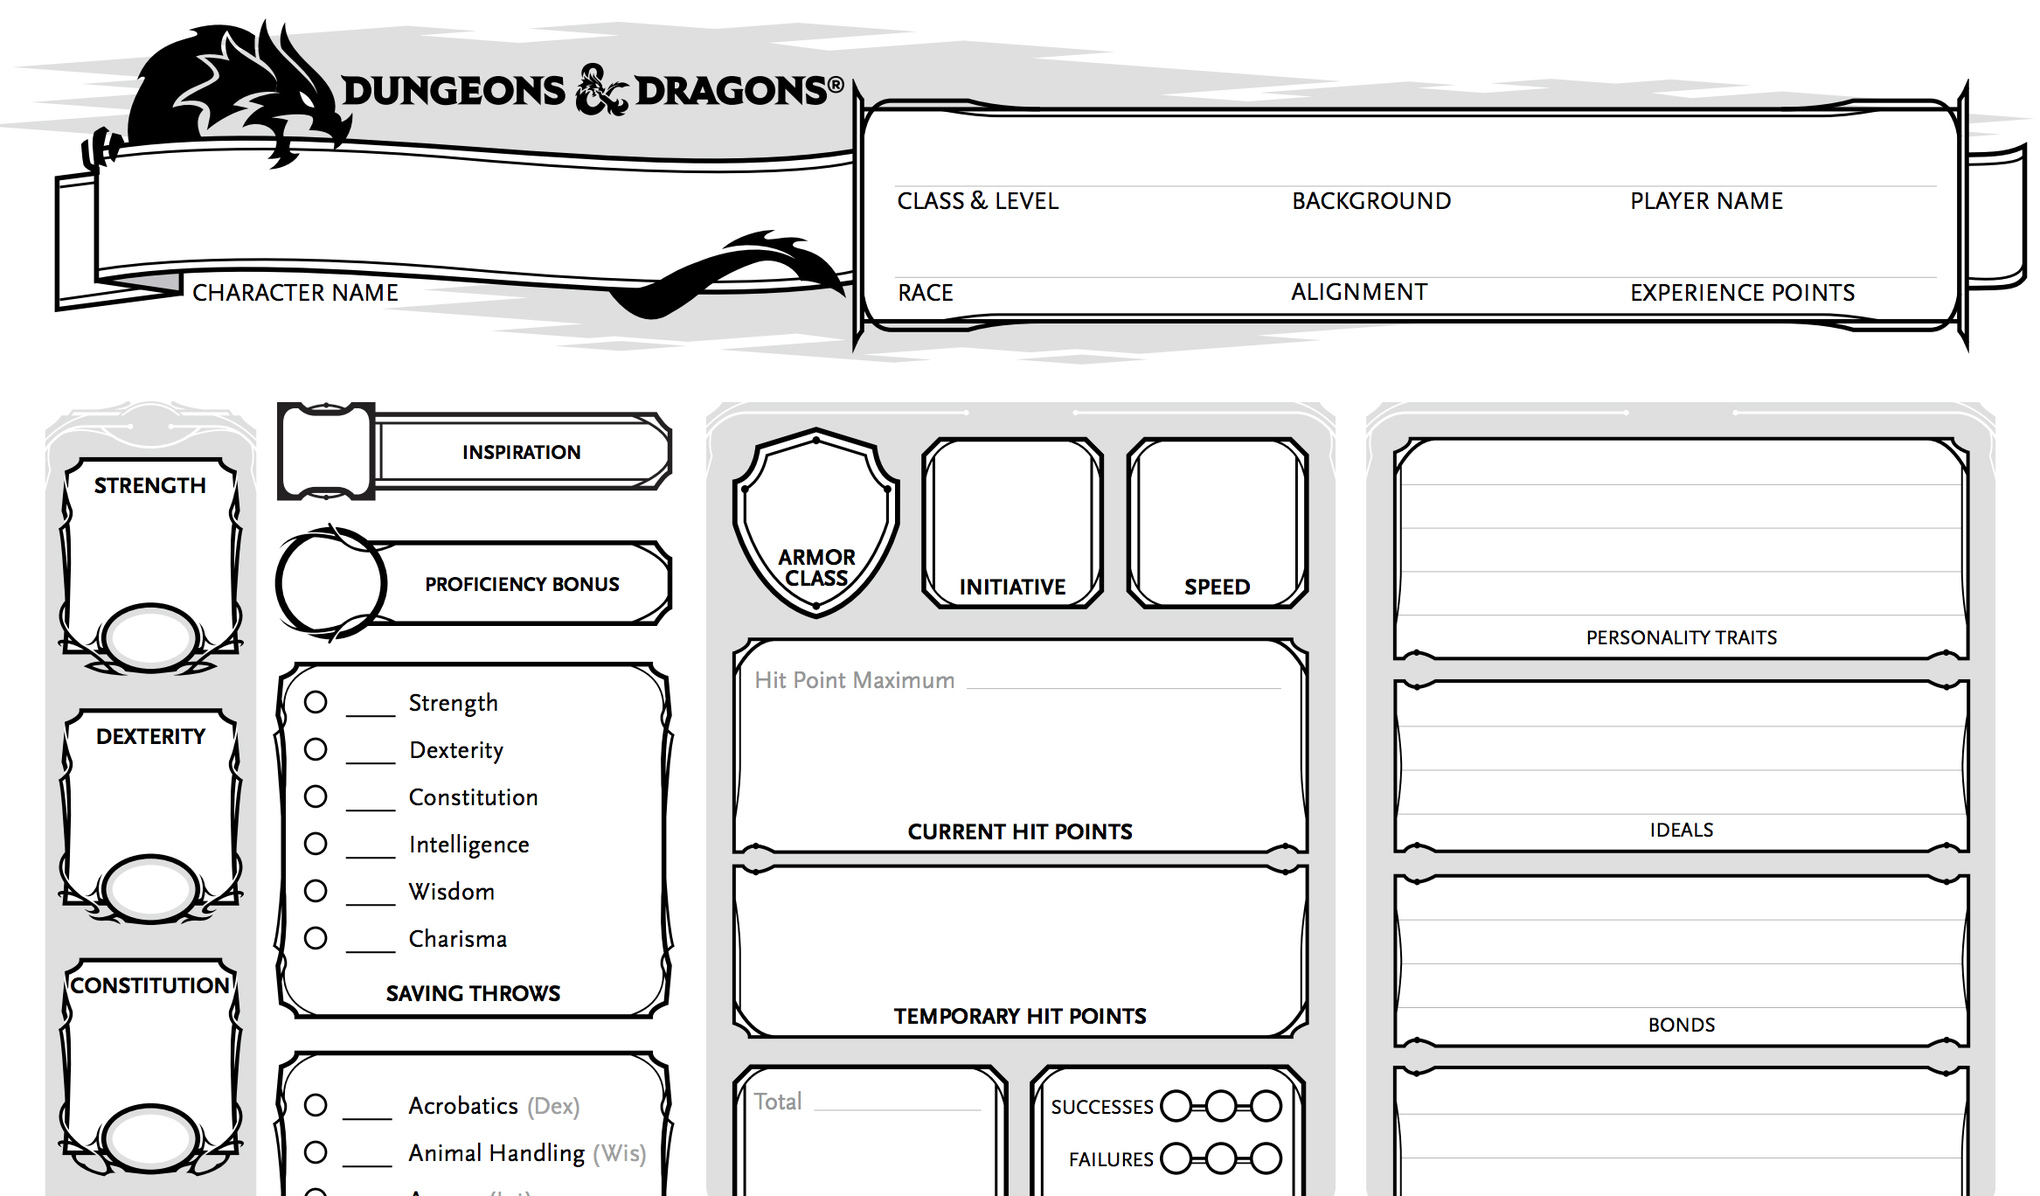 Here's how Dungeons & Dragons is changing for its new